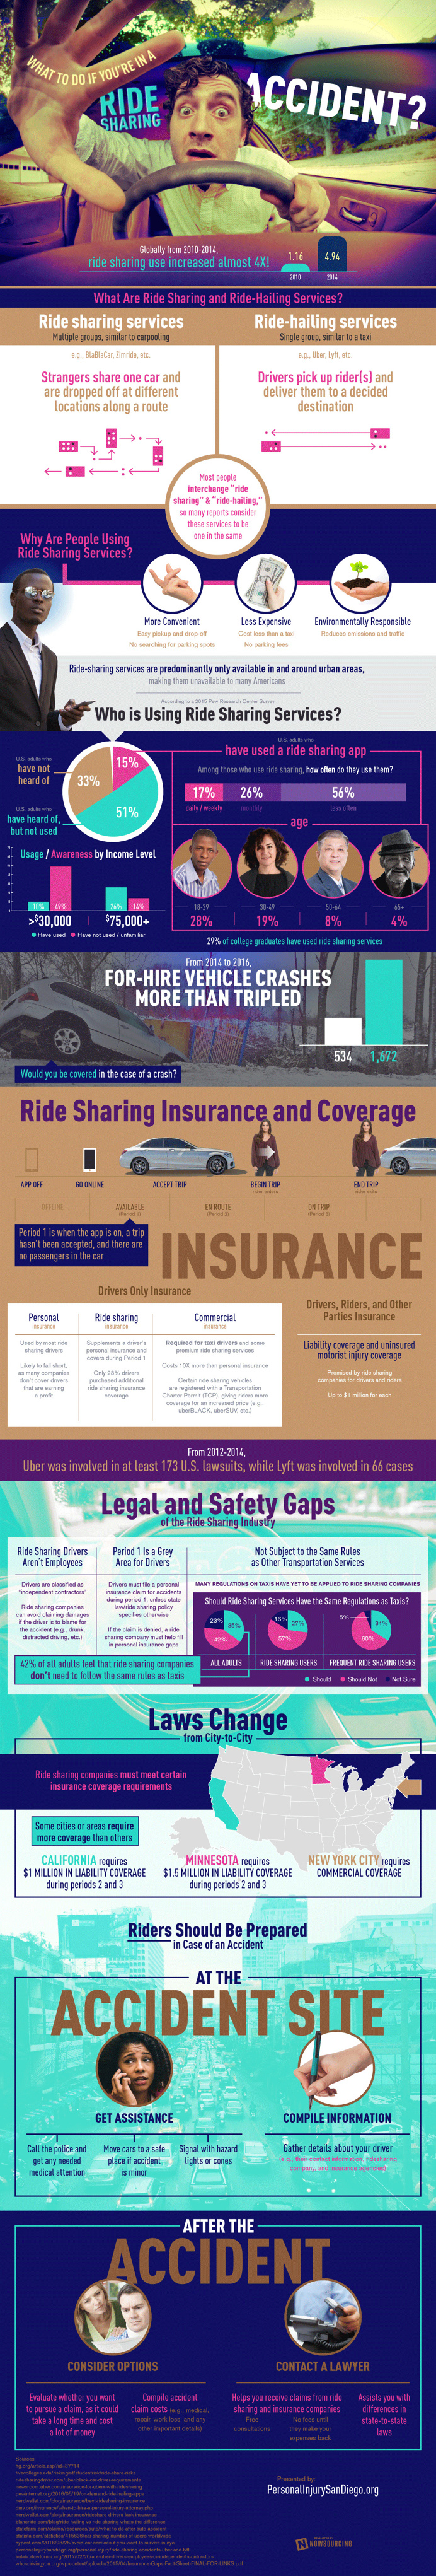 Ride Sharing Accidents